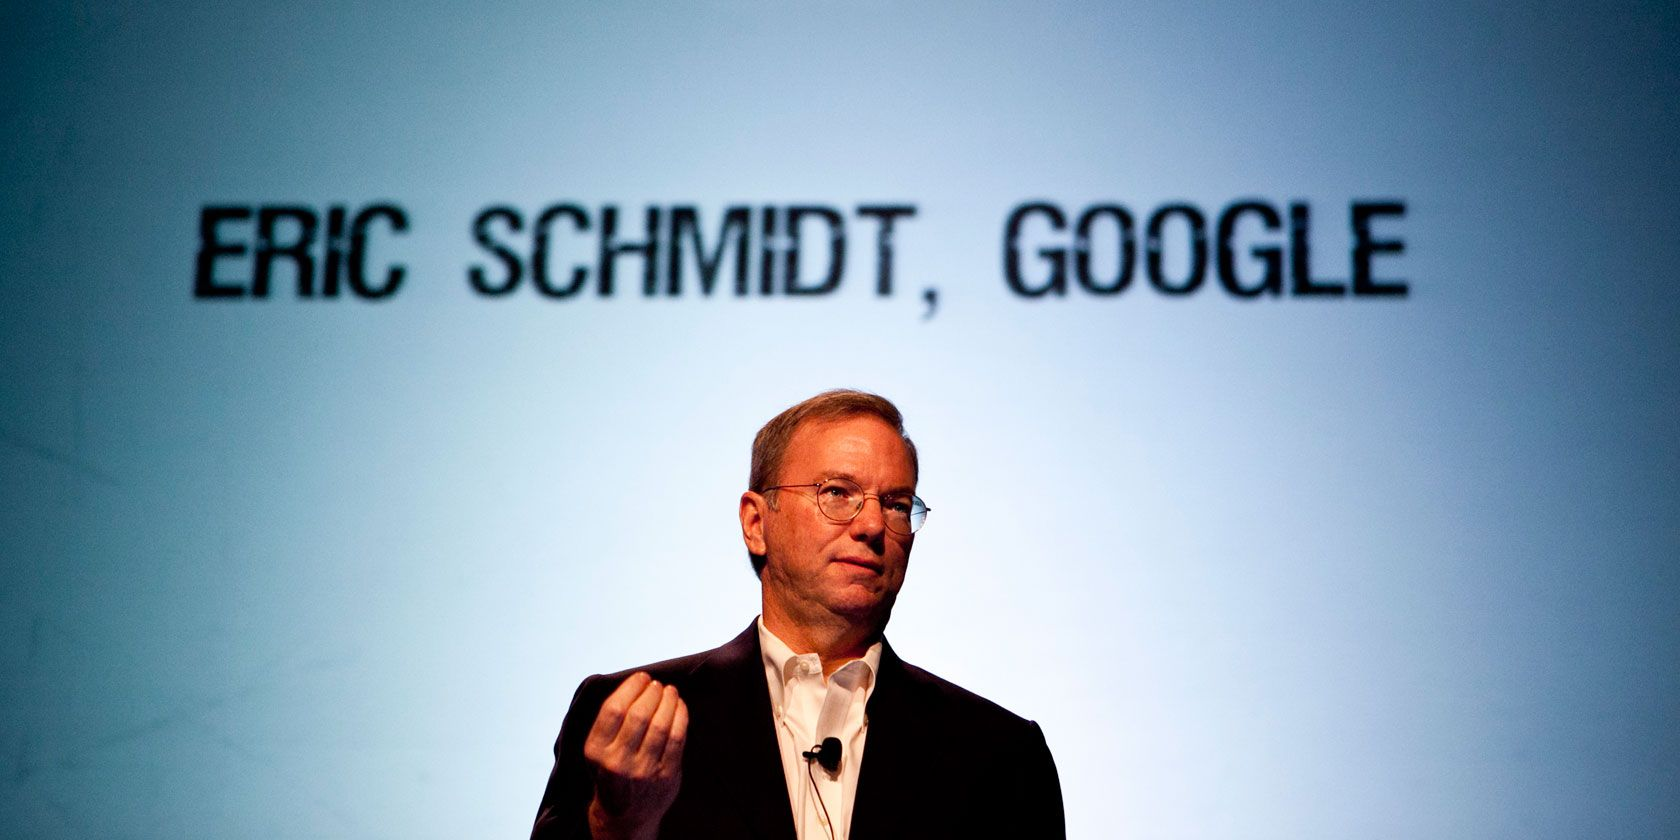 eric schmidt leadership qualities analysis What qualities does a great leader have vast question  eric schmidt largely goes against the grain at google because he wears a suit and tie it reminds people of corporate america, but schmidt has proven to be a powerhouse success at the search engine giant.